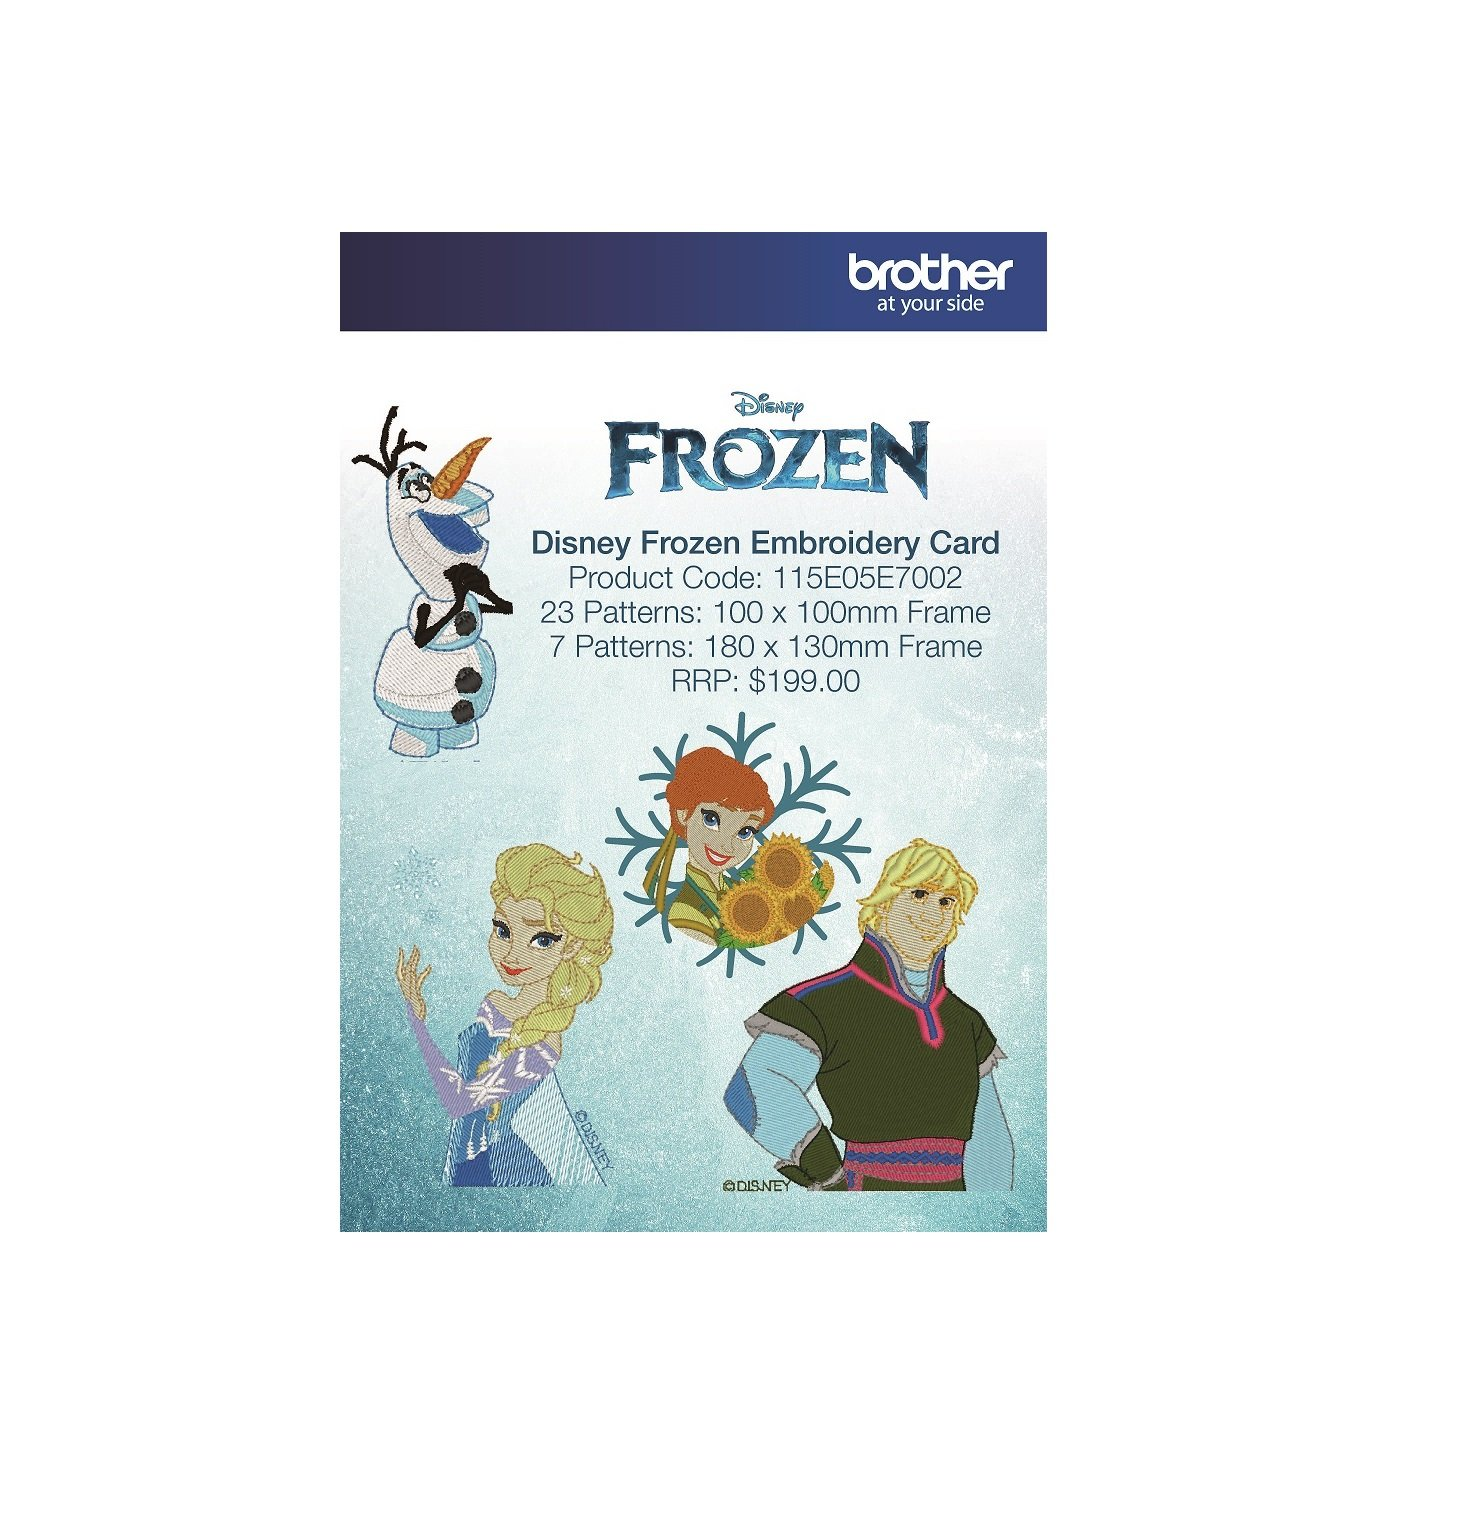 Disney S Frozen Embroidery Card 25 Blackmore And Roy Perth Wa,Jeans Garments Showroom Interior Design Photos Catalog